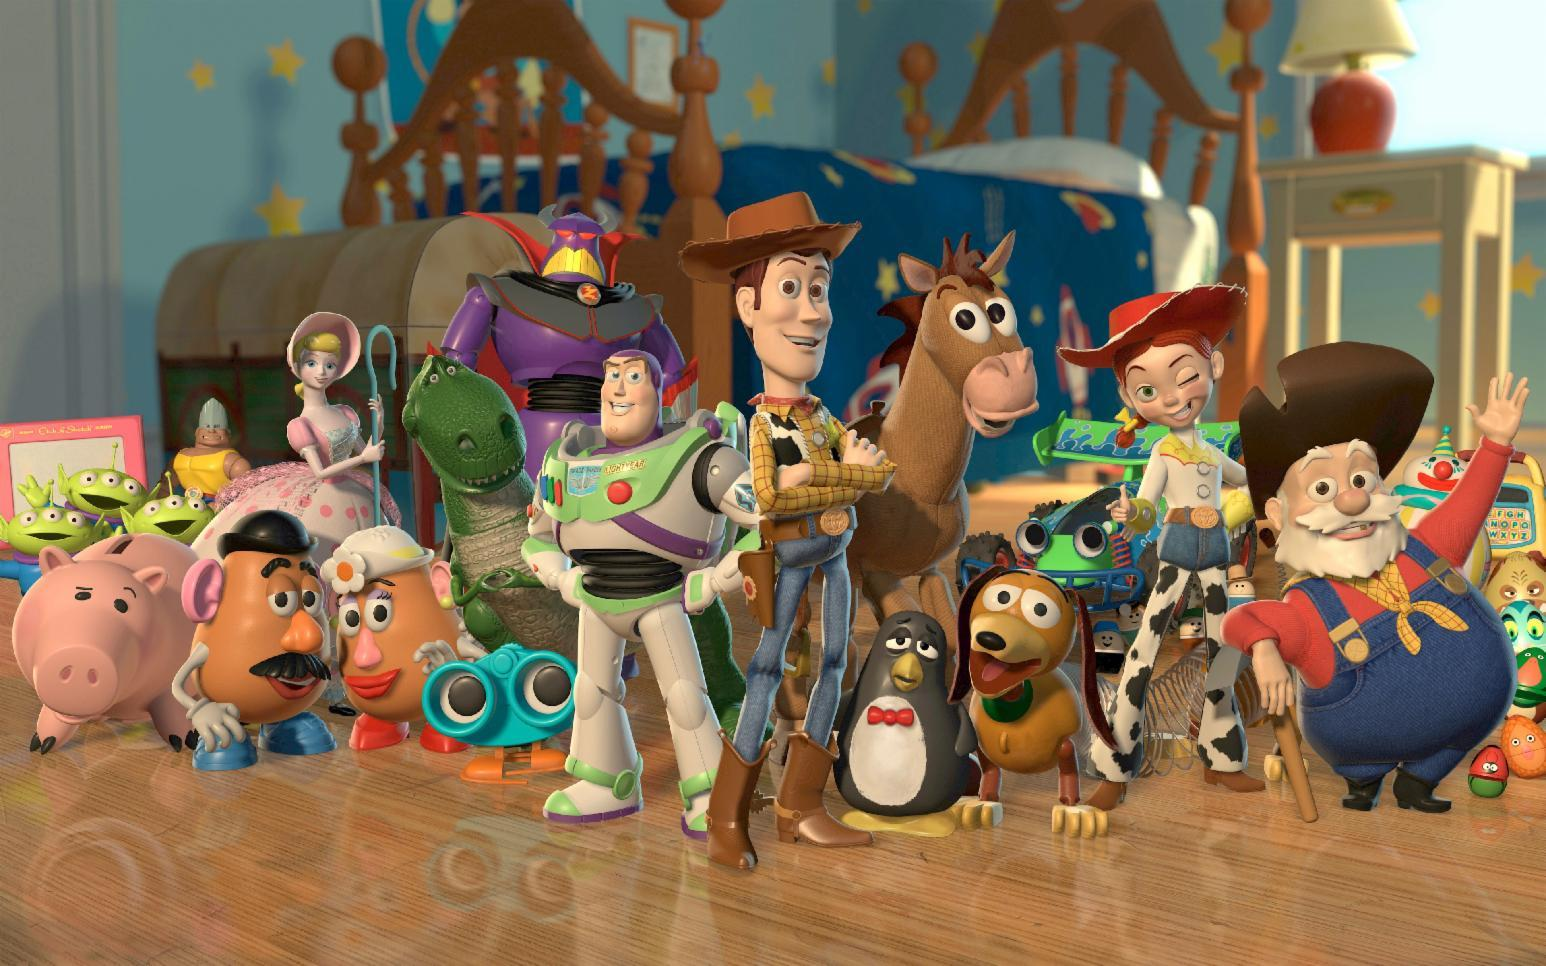 Did you enjoy the movie Toy Story 2?